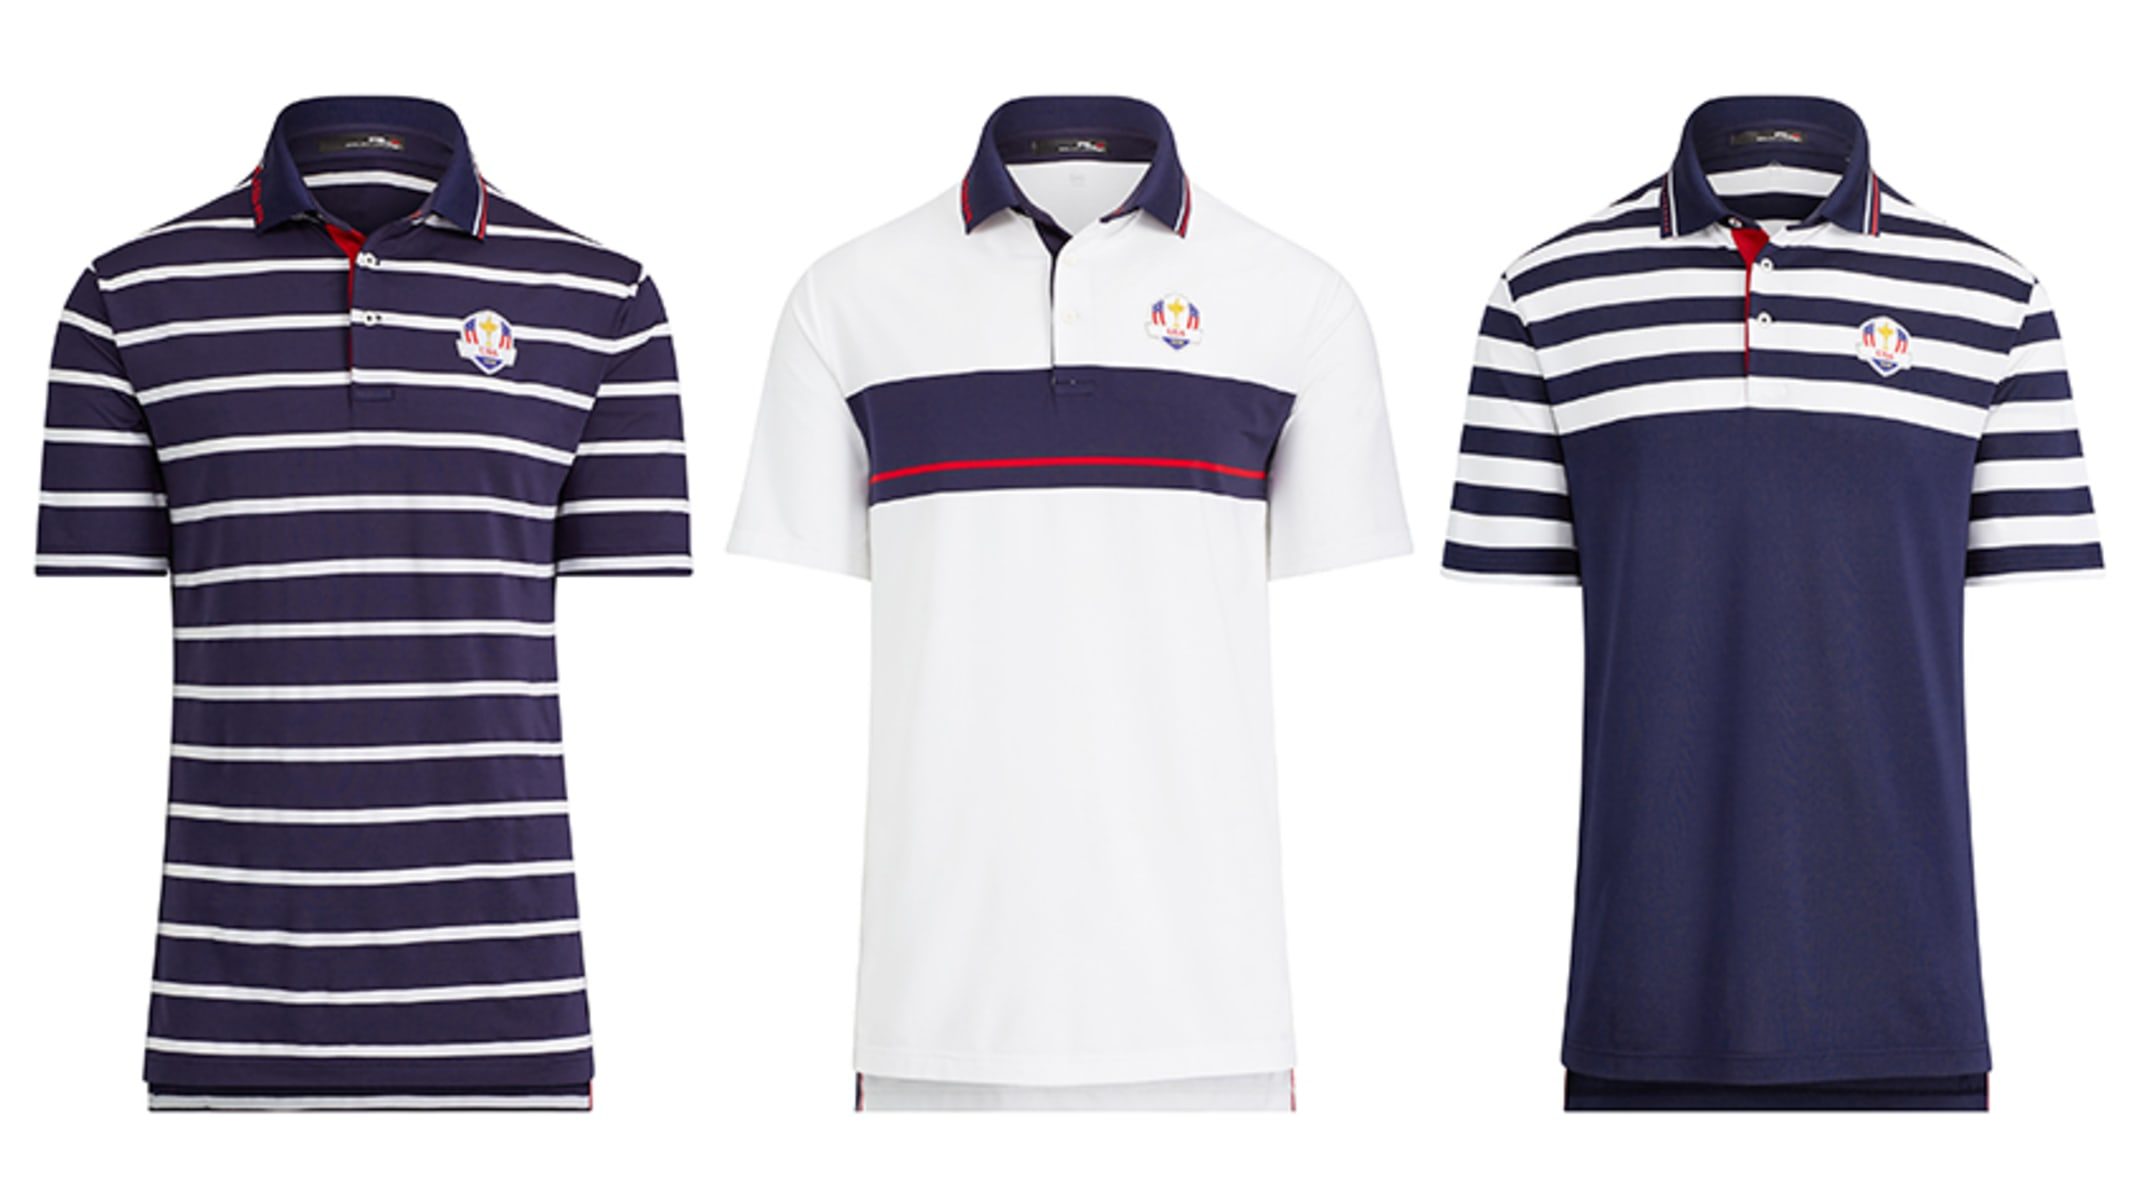 4ff05346458 Ralph Lauren is outfitting the U.S. Ryder Cup team this week in Paris.  (Ralph